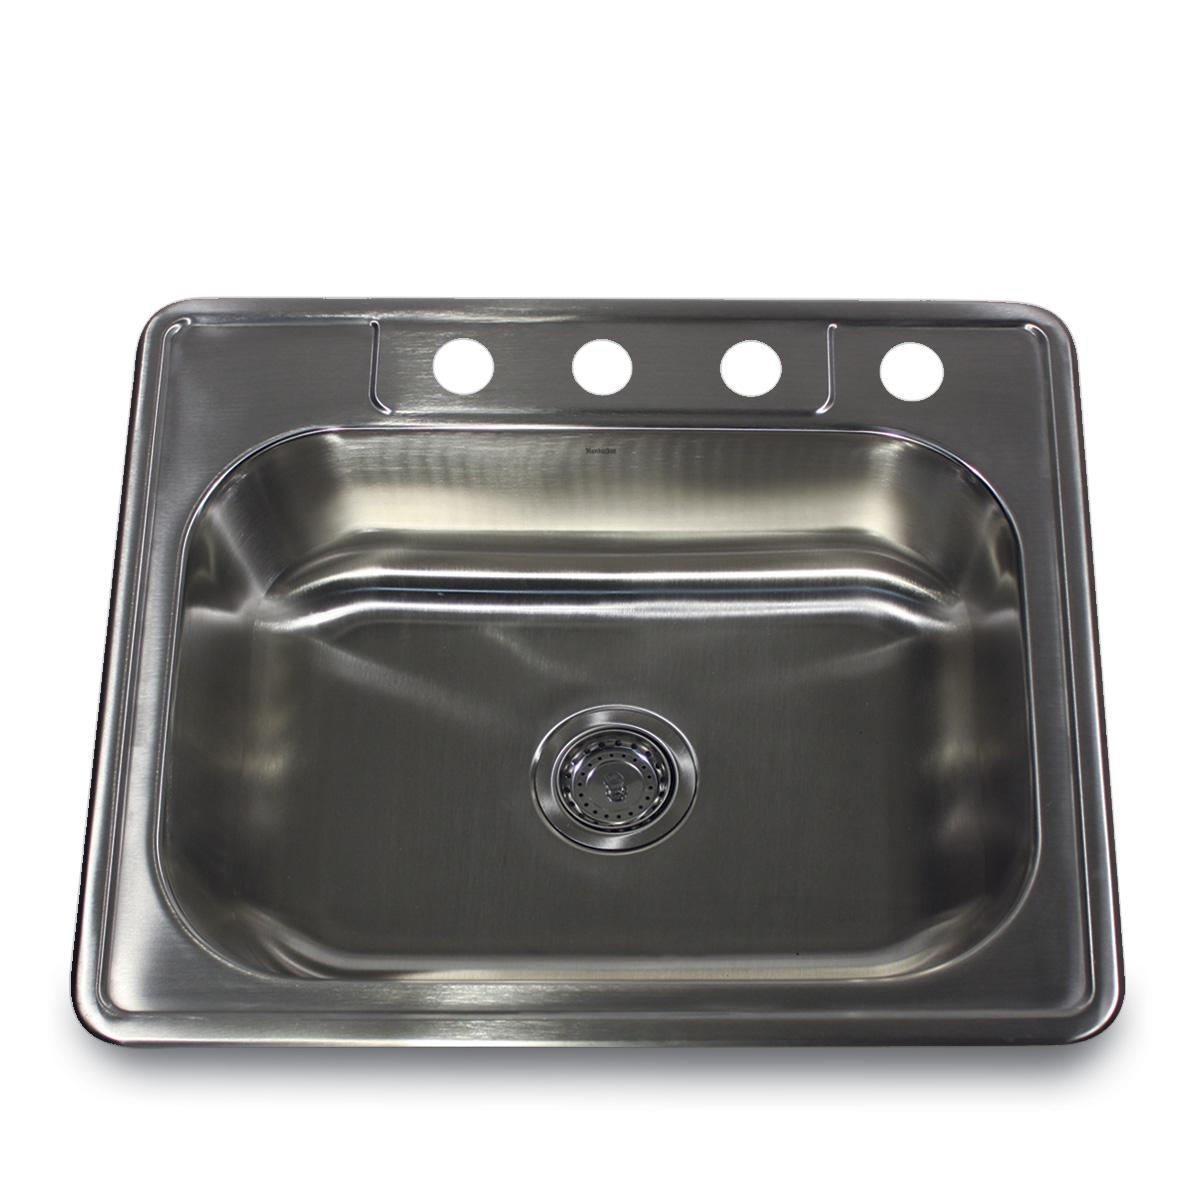 Stainless Steel Kitchen Sinks : Wells Sinkware Topmount Single Bowl Stainless Steel Kitchen Sink